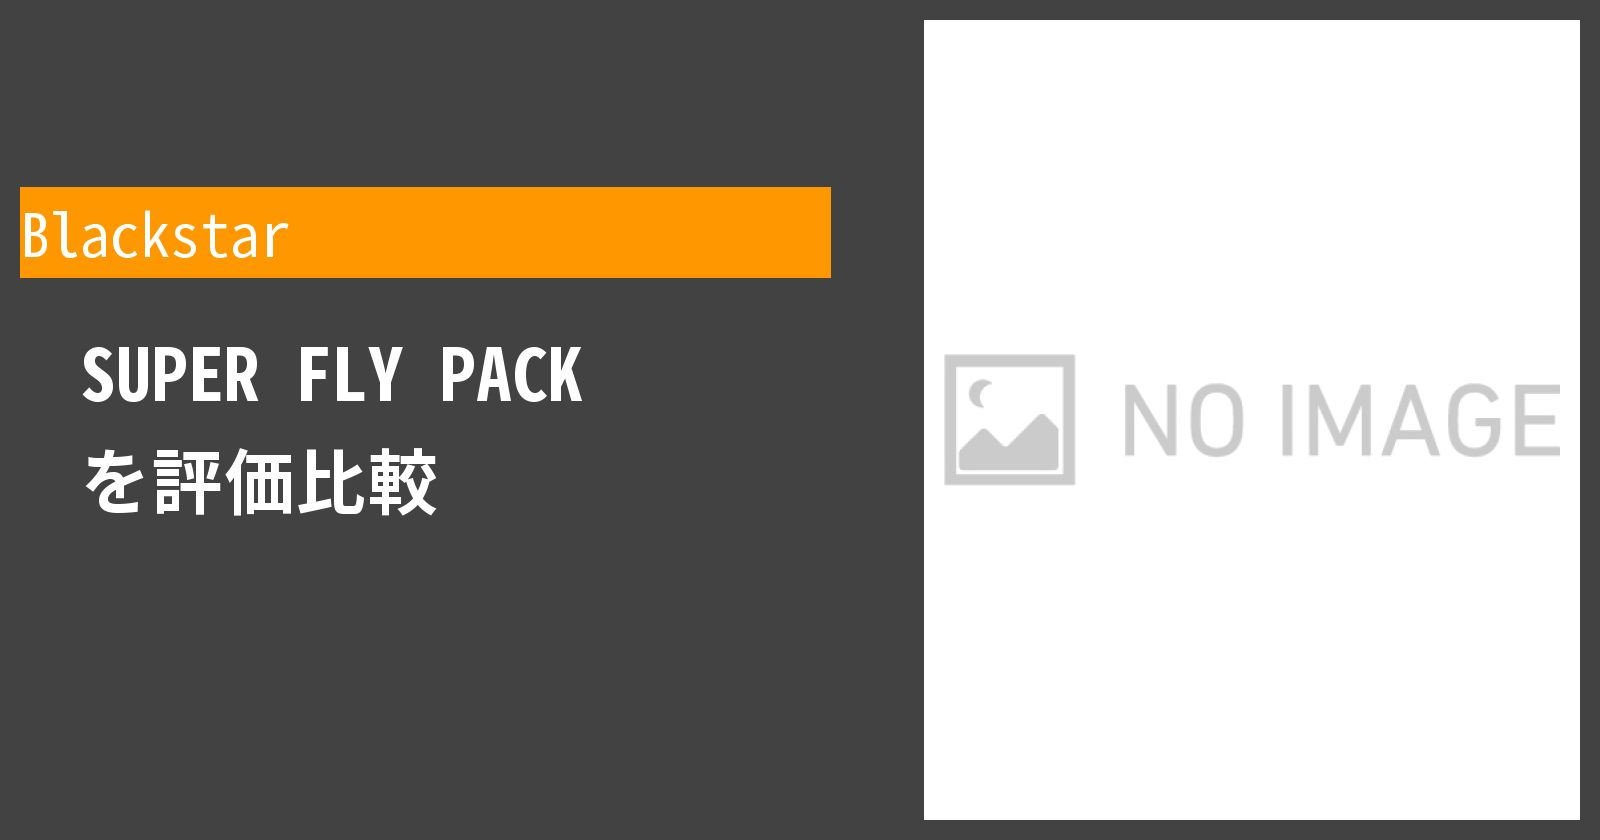 SUPER FLY PACKを徹底評価